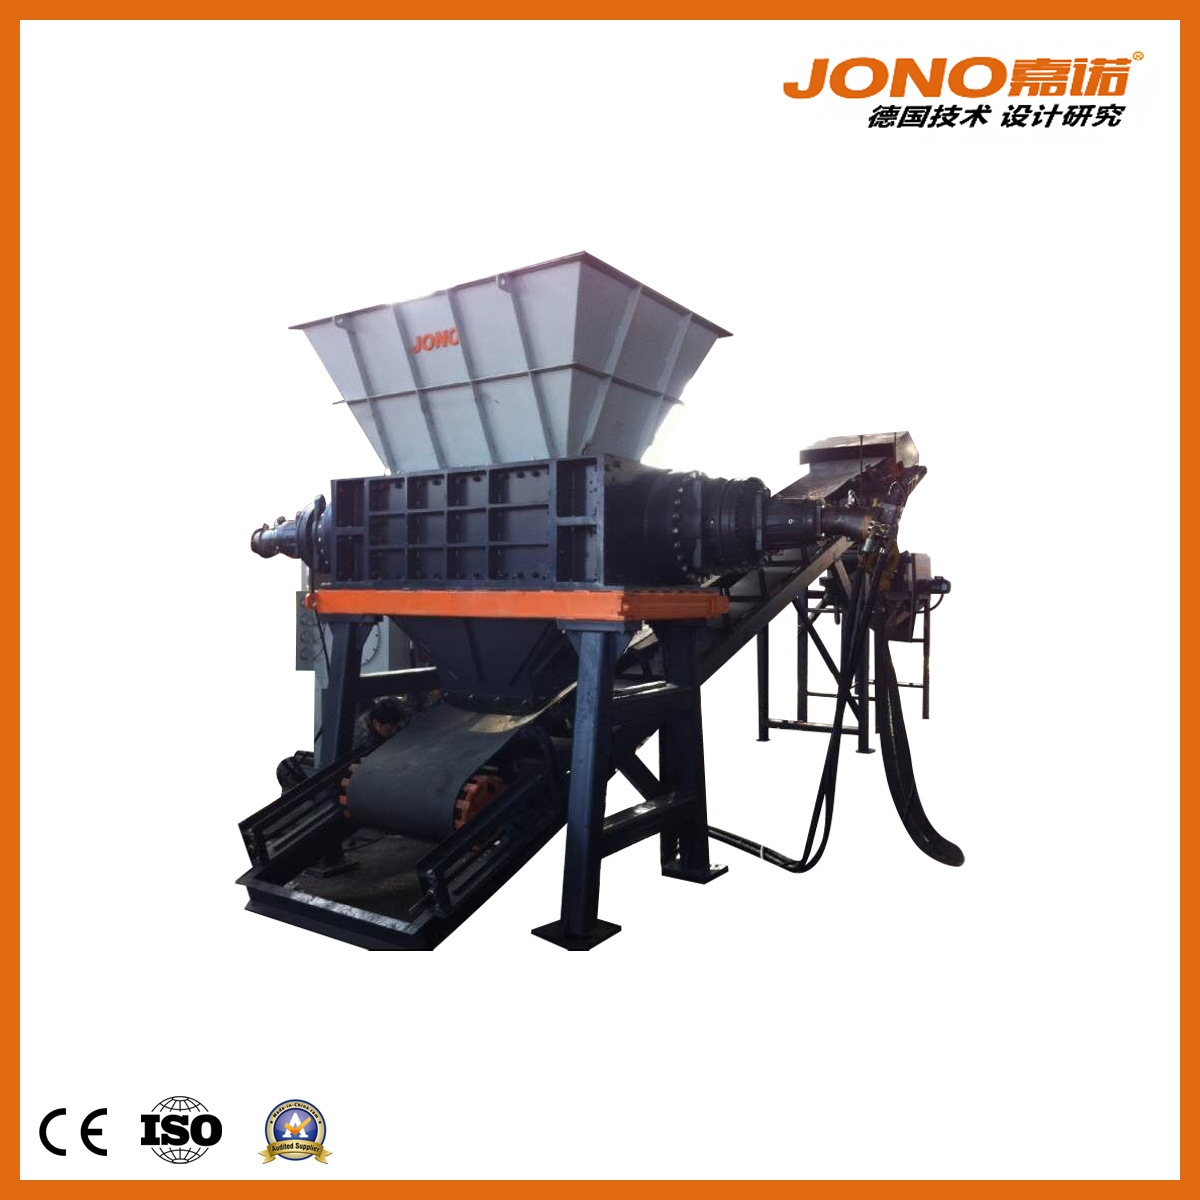 China 1psl3410h Dual Shaft Shear Shredder For Metal Recycling Scrap Printed Circuit Board Equipment From Professional Industry